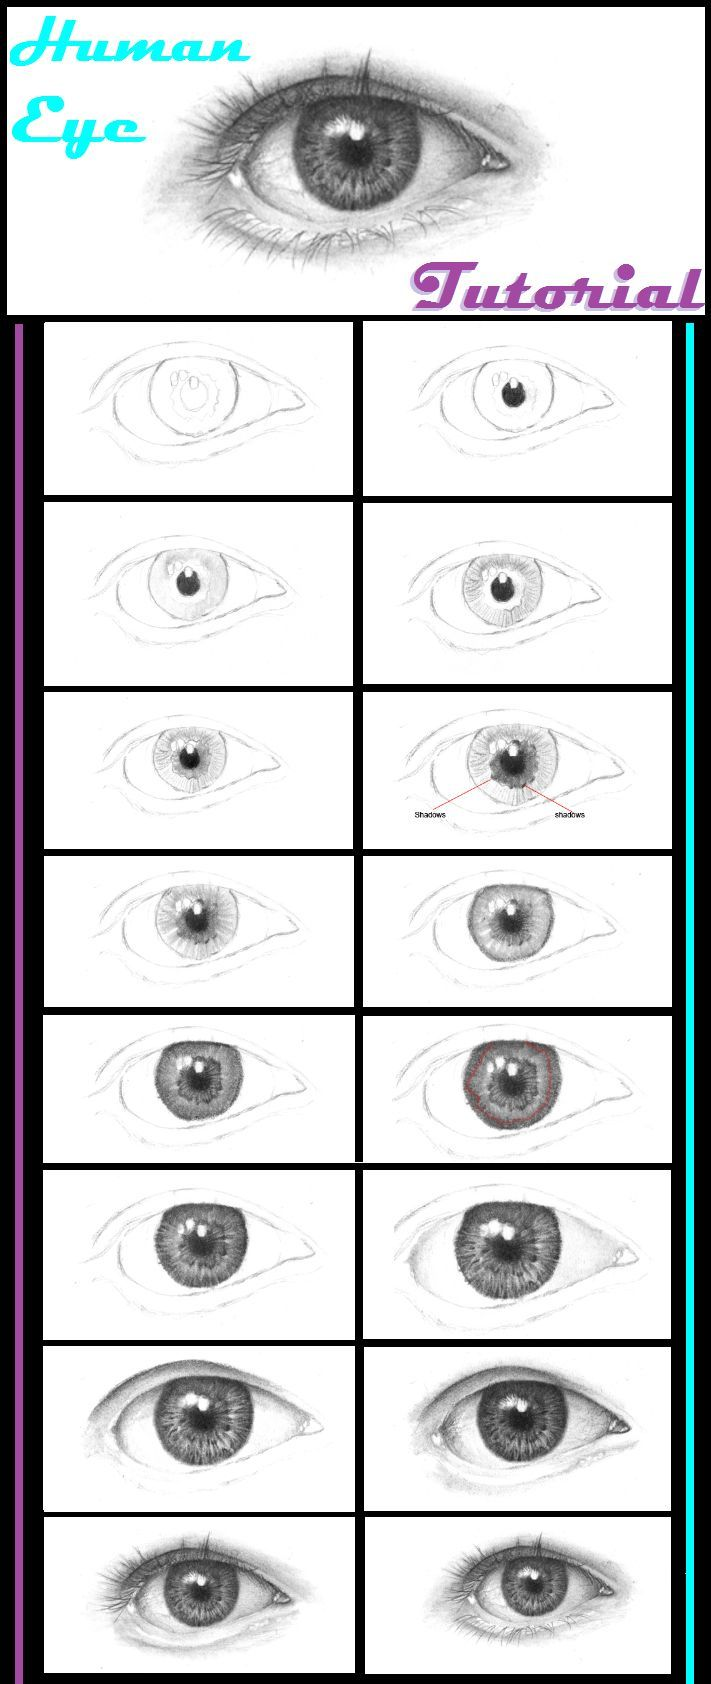 How to draw a human eye. #human_eye_tutorial: